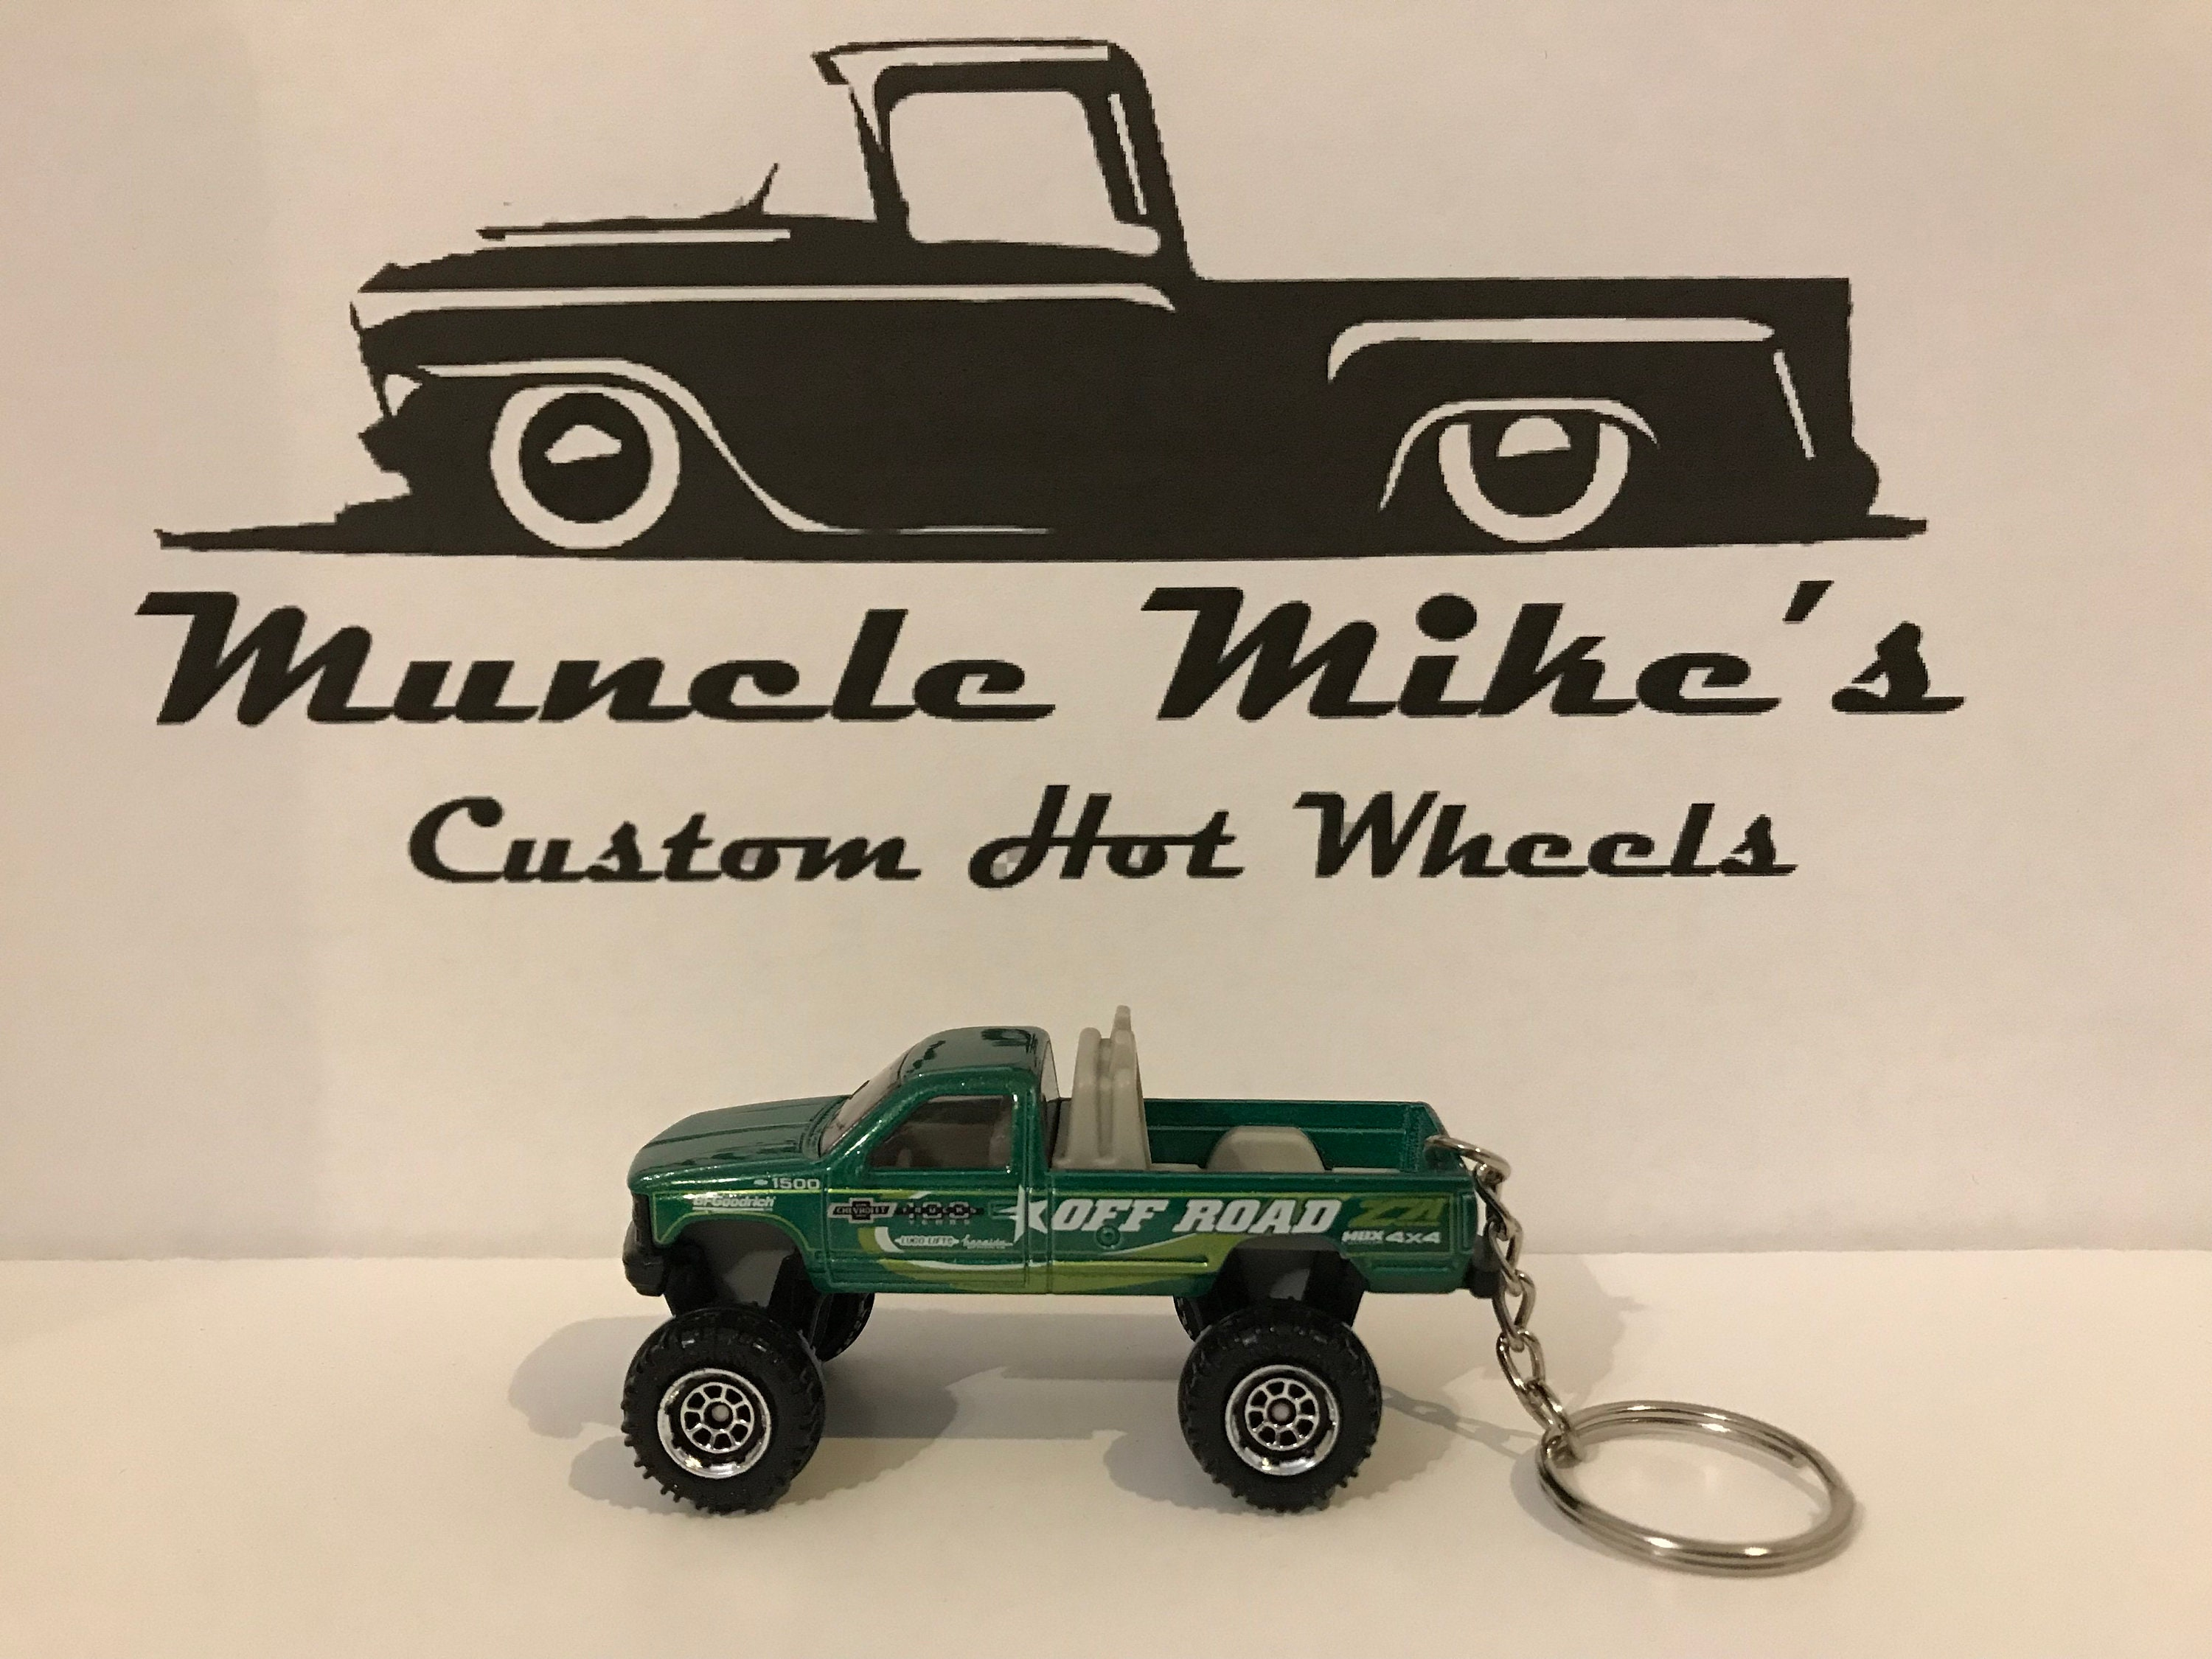 Custom Hot Wheels green Chevy K-1500 pickup truck Christmas Ornament,  Keychain or Zipper Pull